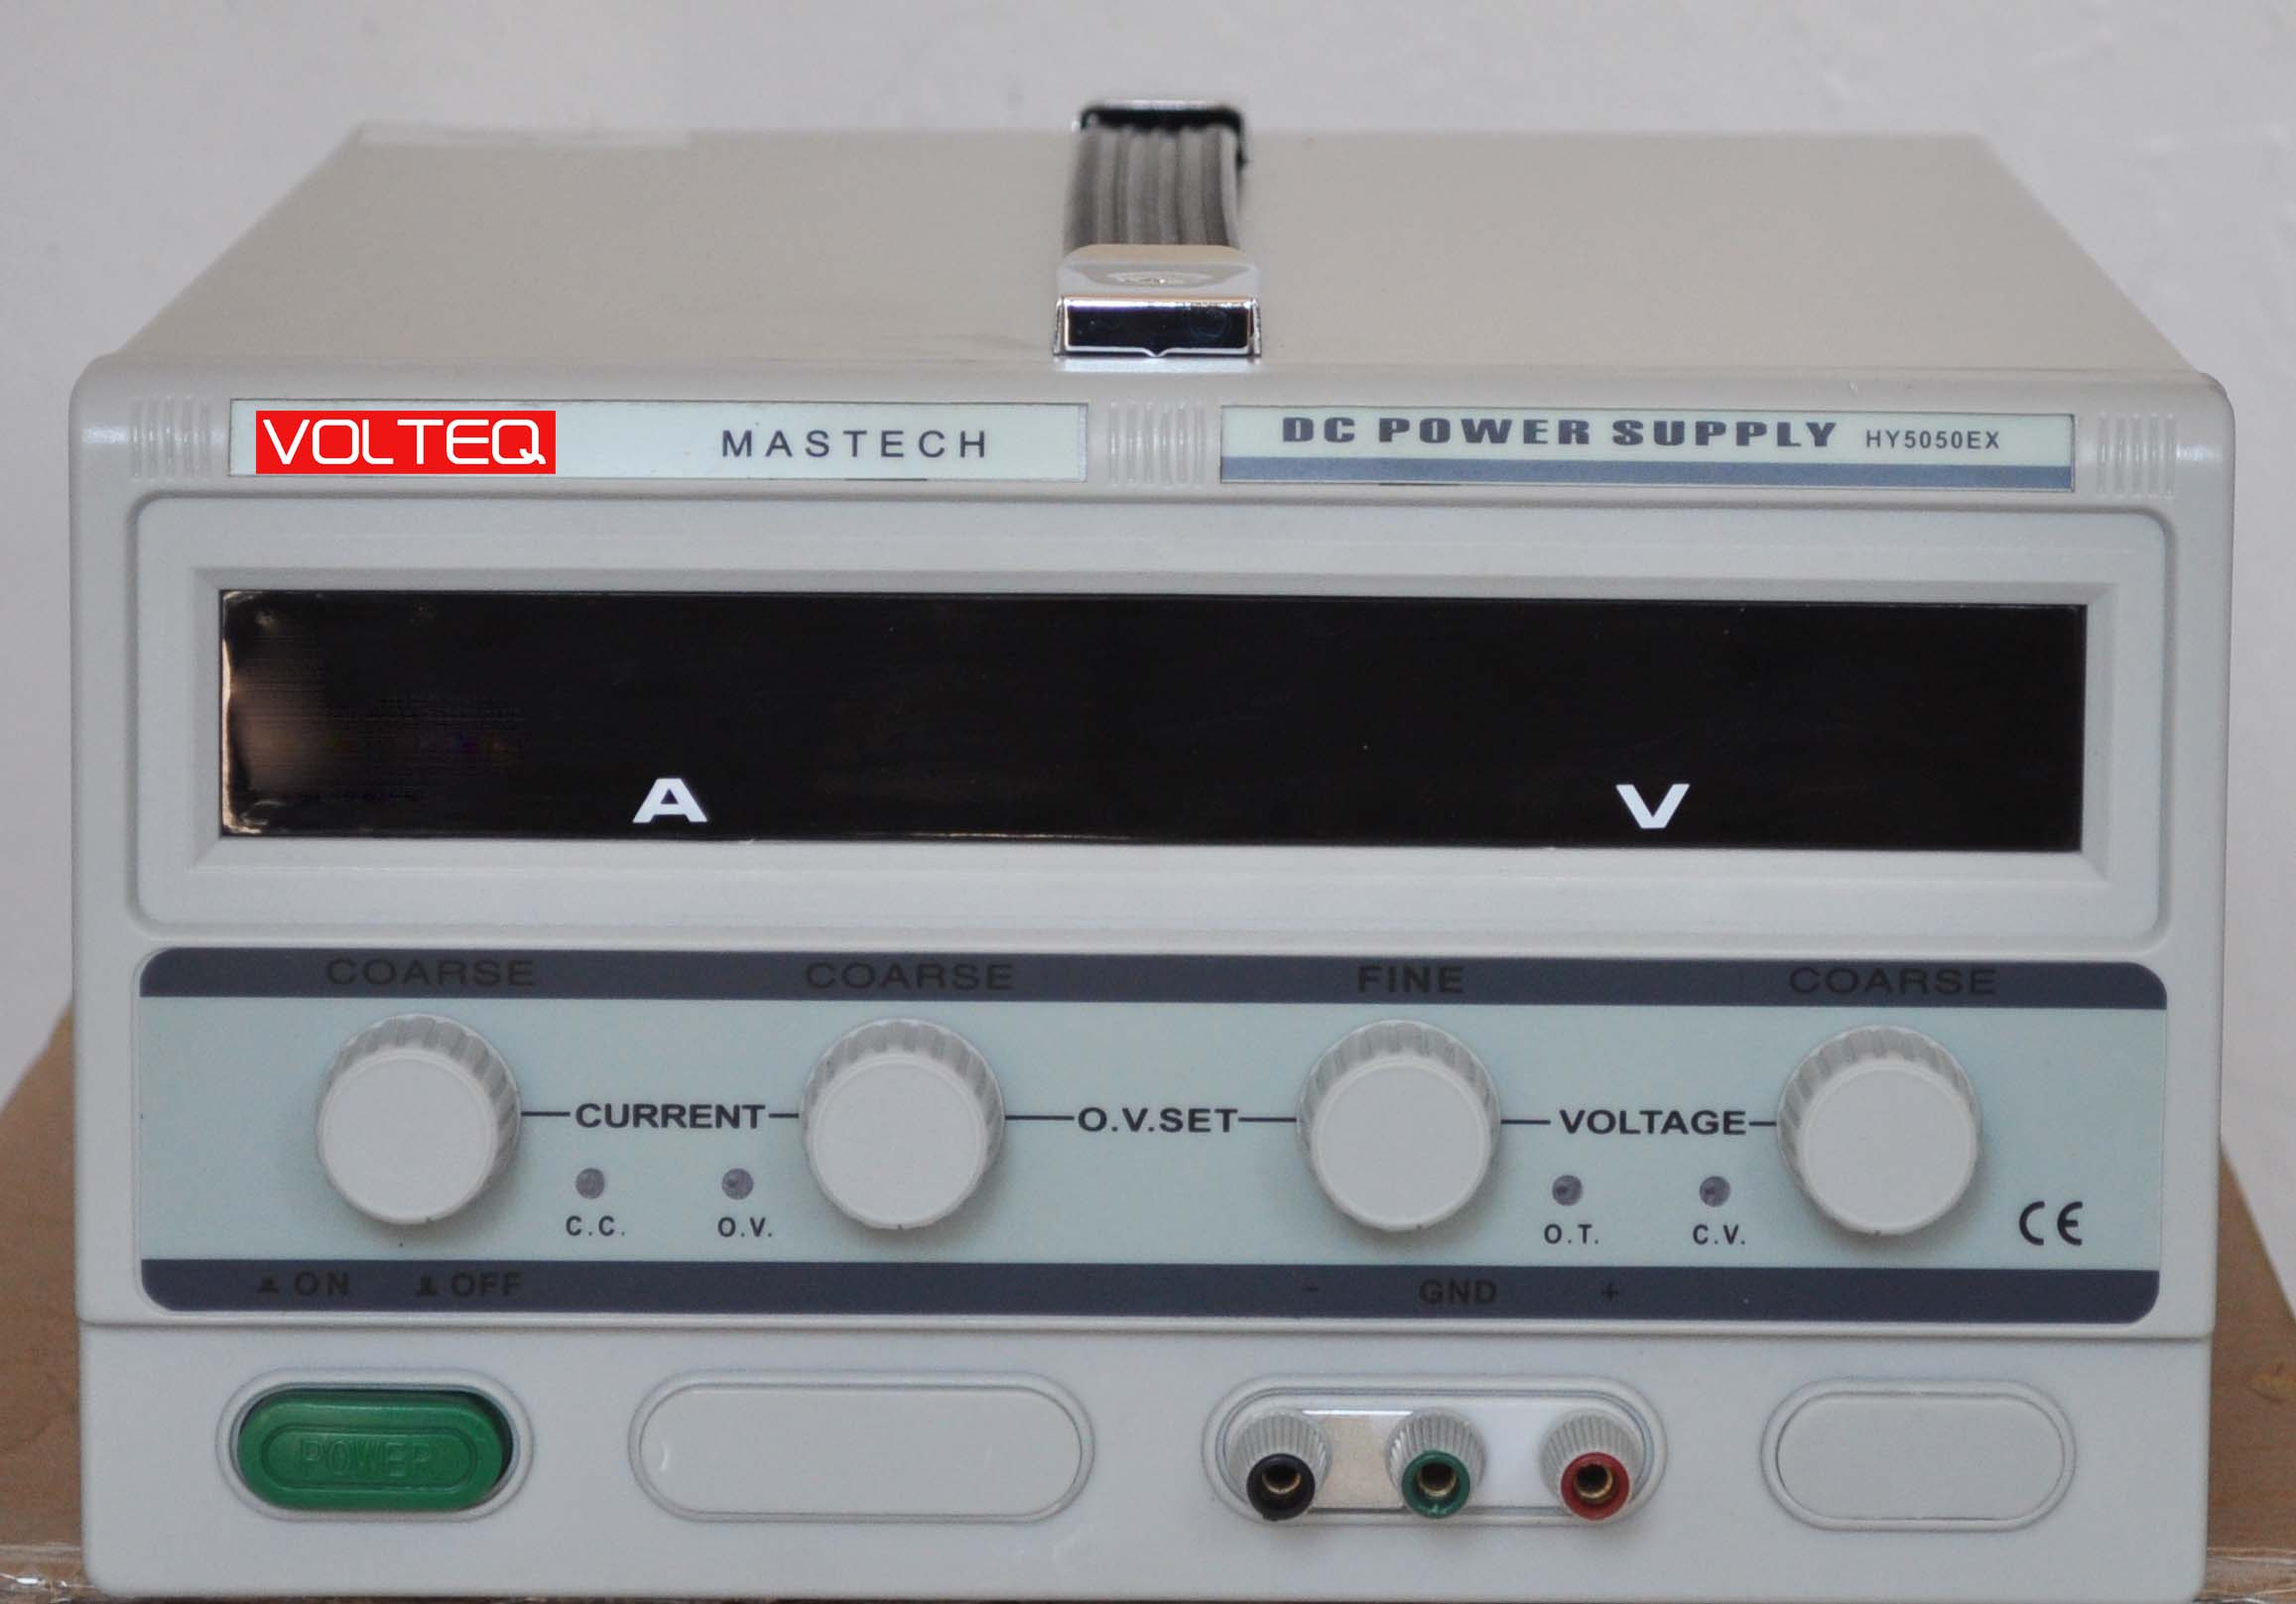 Regulated Dc Power Supply Hy5050ex Volteq Reliable Variable Voltage And Current Switching